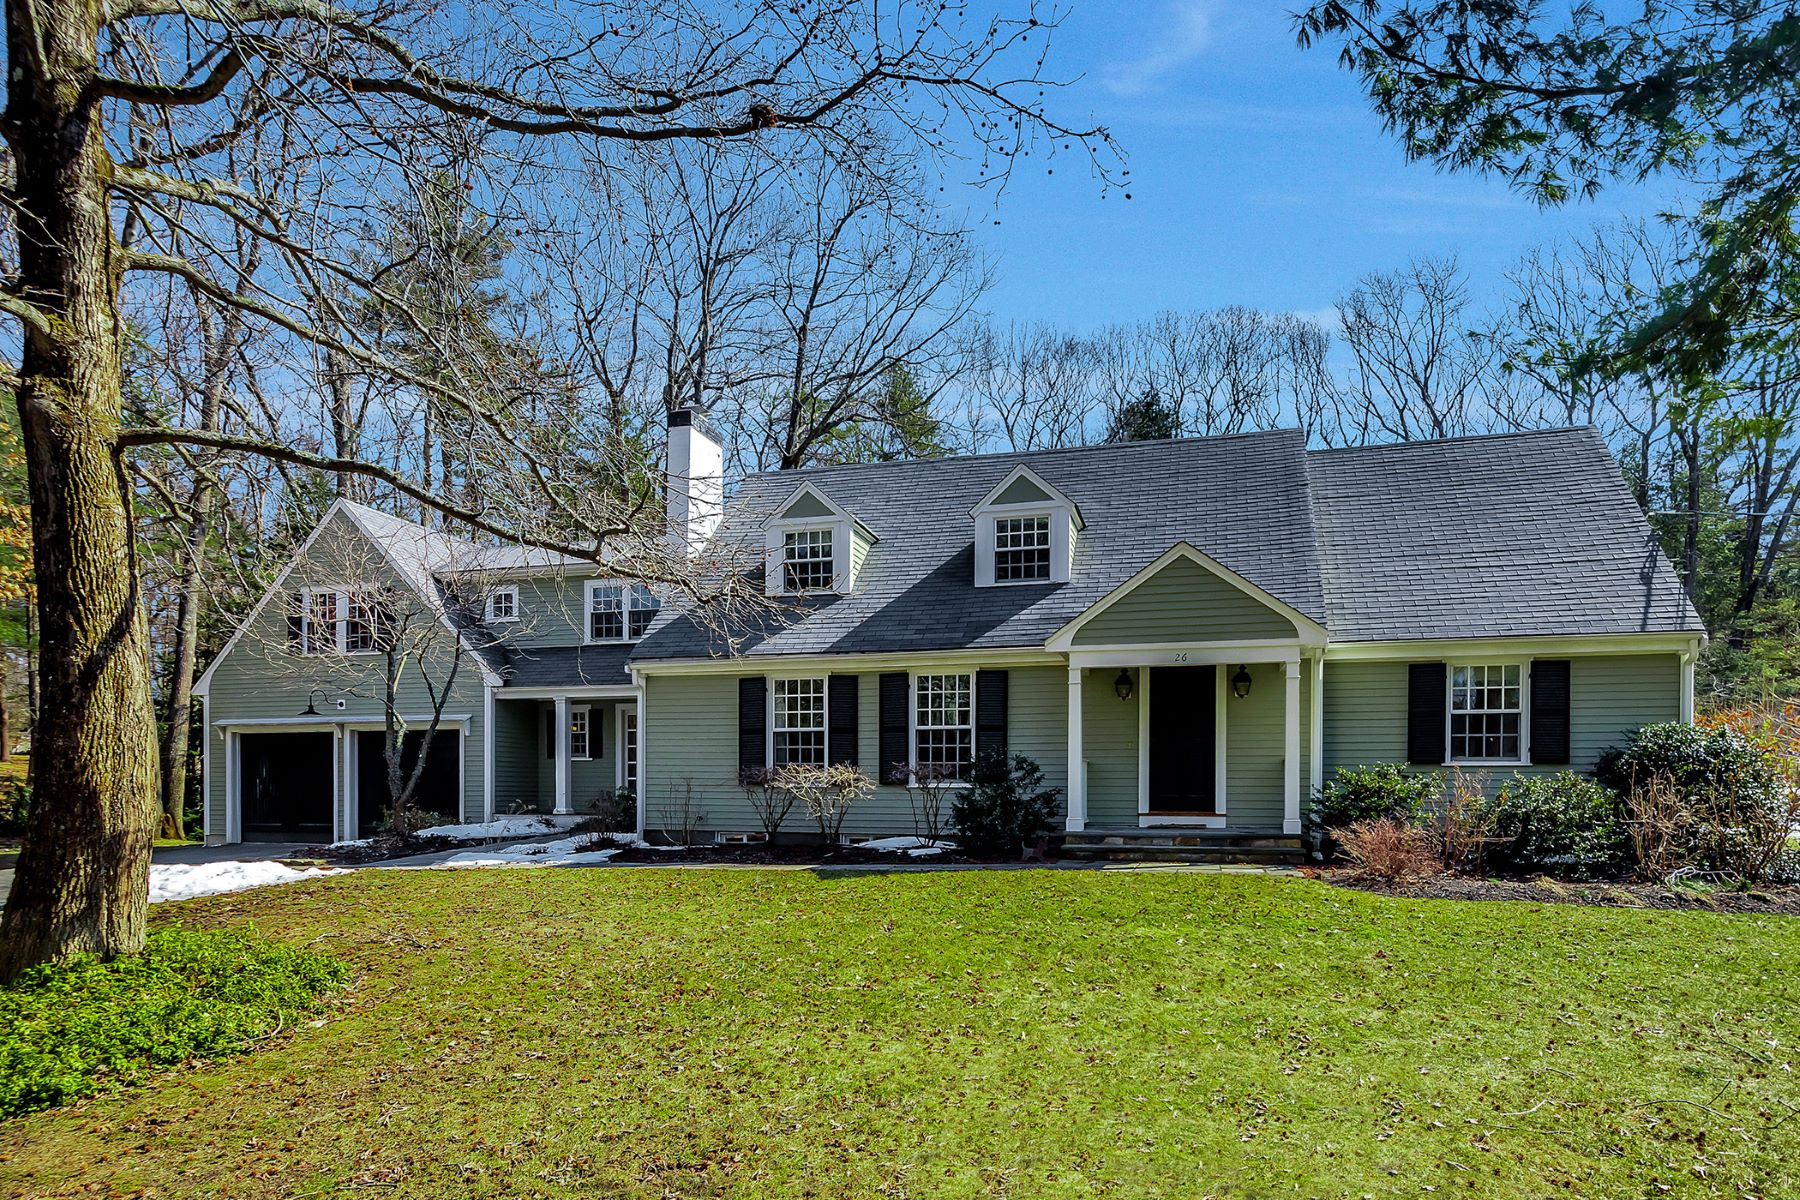 Single Family Home for Active at 26 Old Farm Road, Lincoln 26 Old Farm Rd Lincoln, Massachusetts 01773 United States